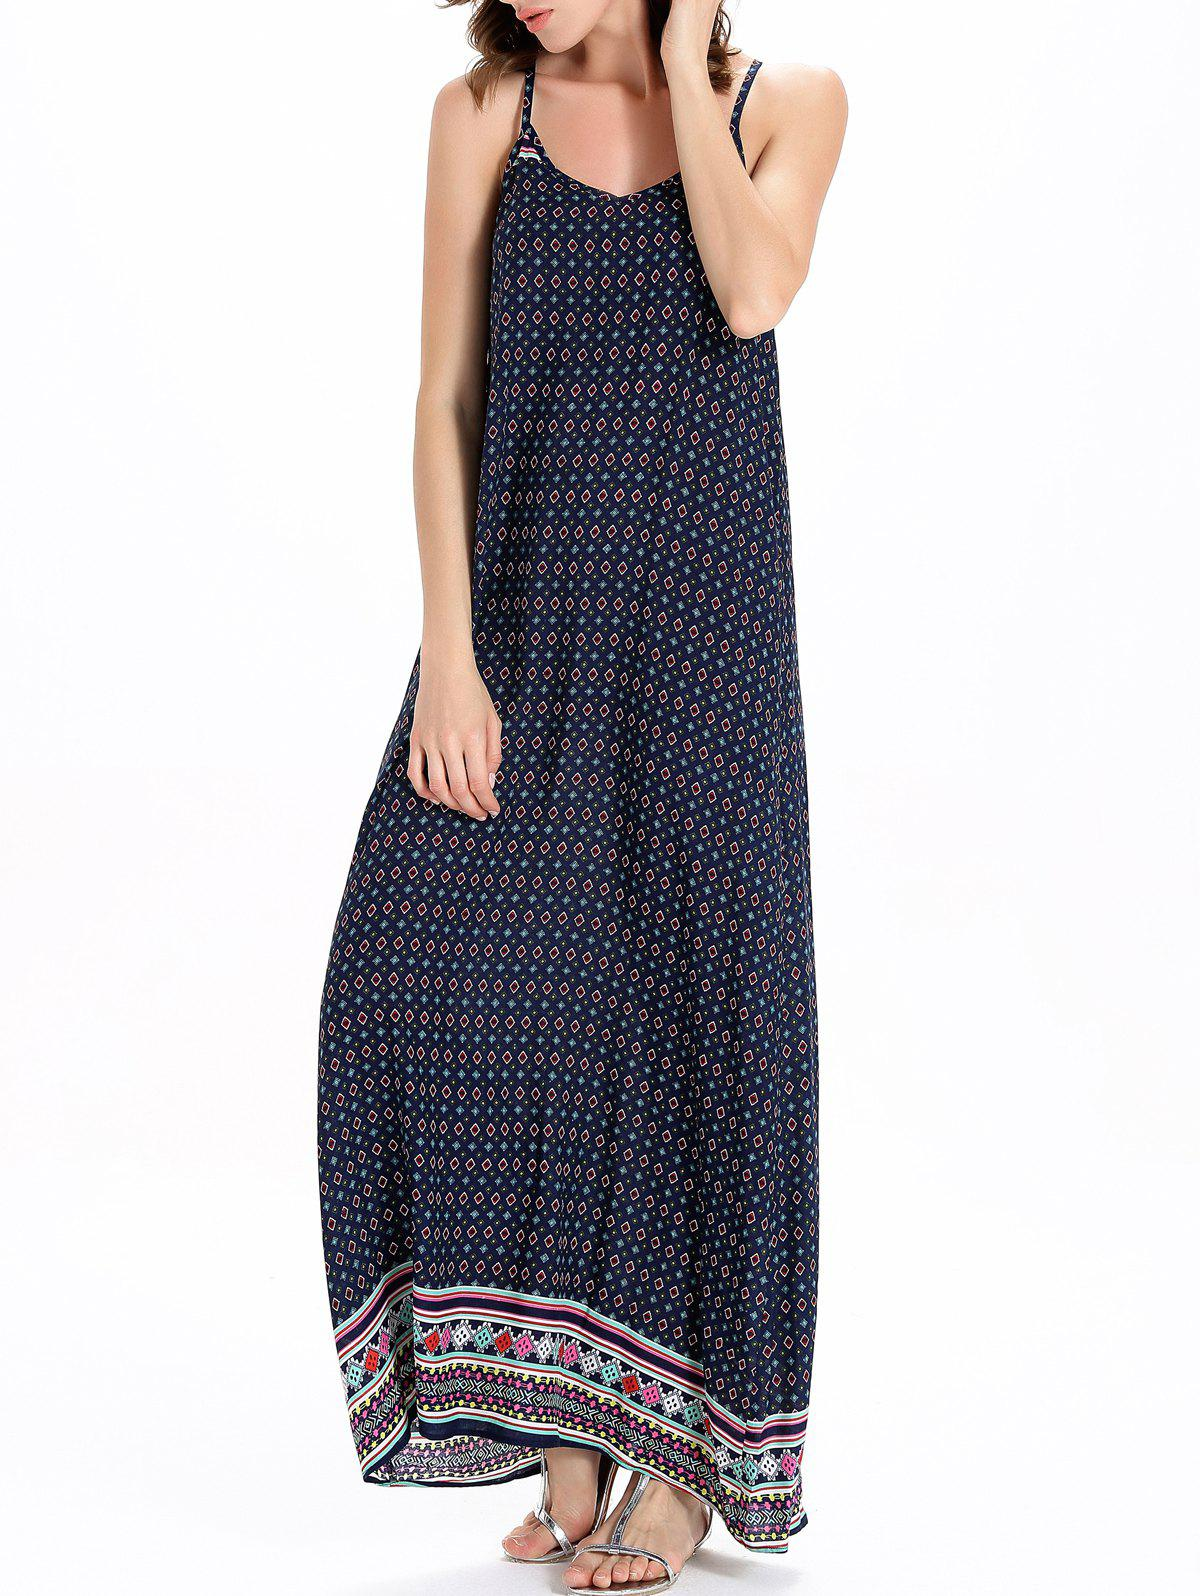 Bohemian Style Print Sleeveless Dress For Women - COLORMIX 2XL